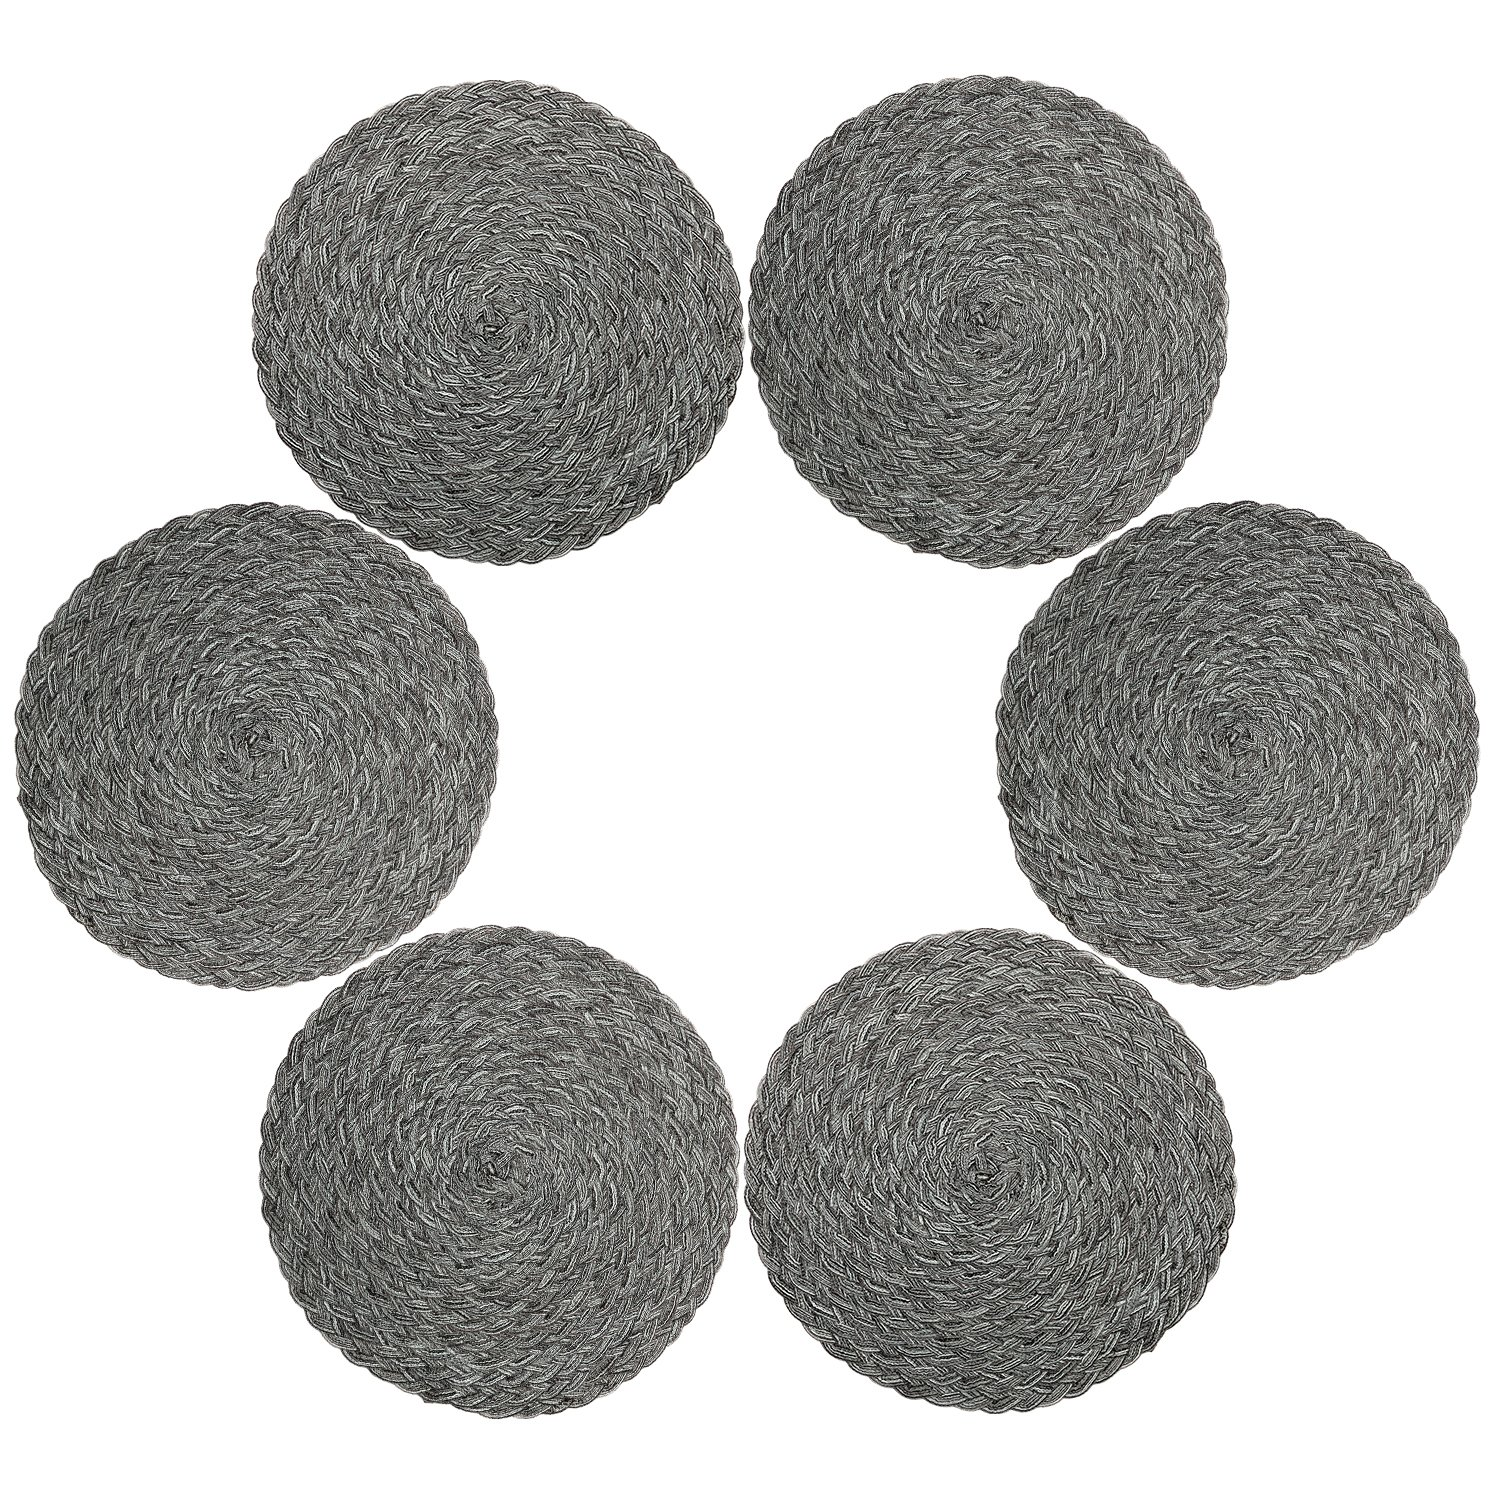 Placemts,Topotdor 15-Inch Round Placemat Braided Woven Placemats Set of 6 (Braided-Gray)